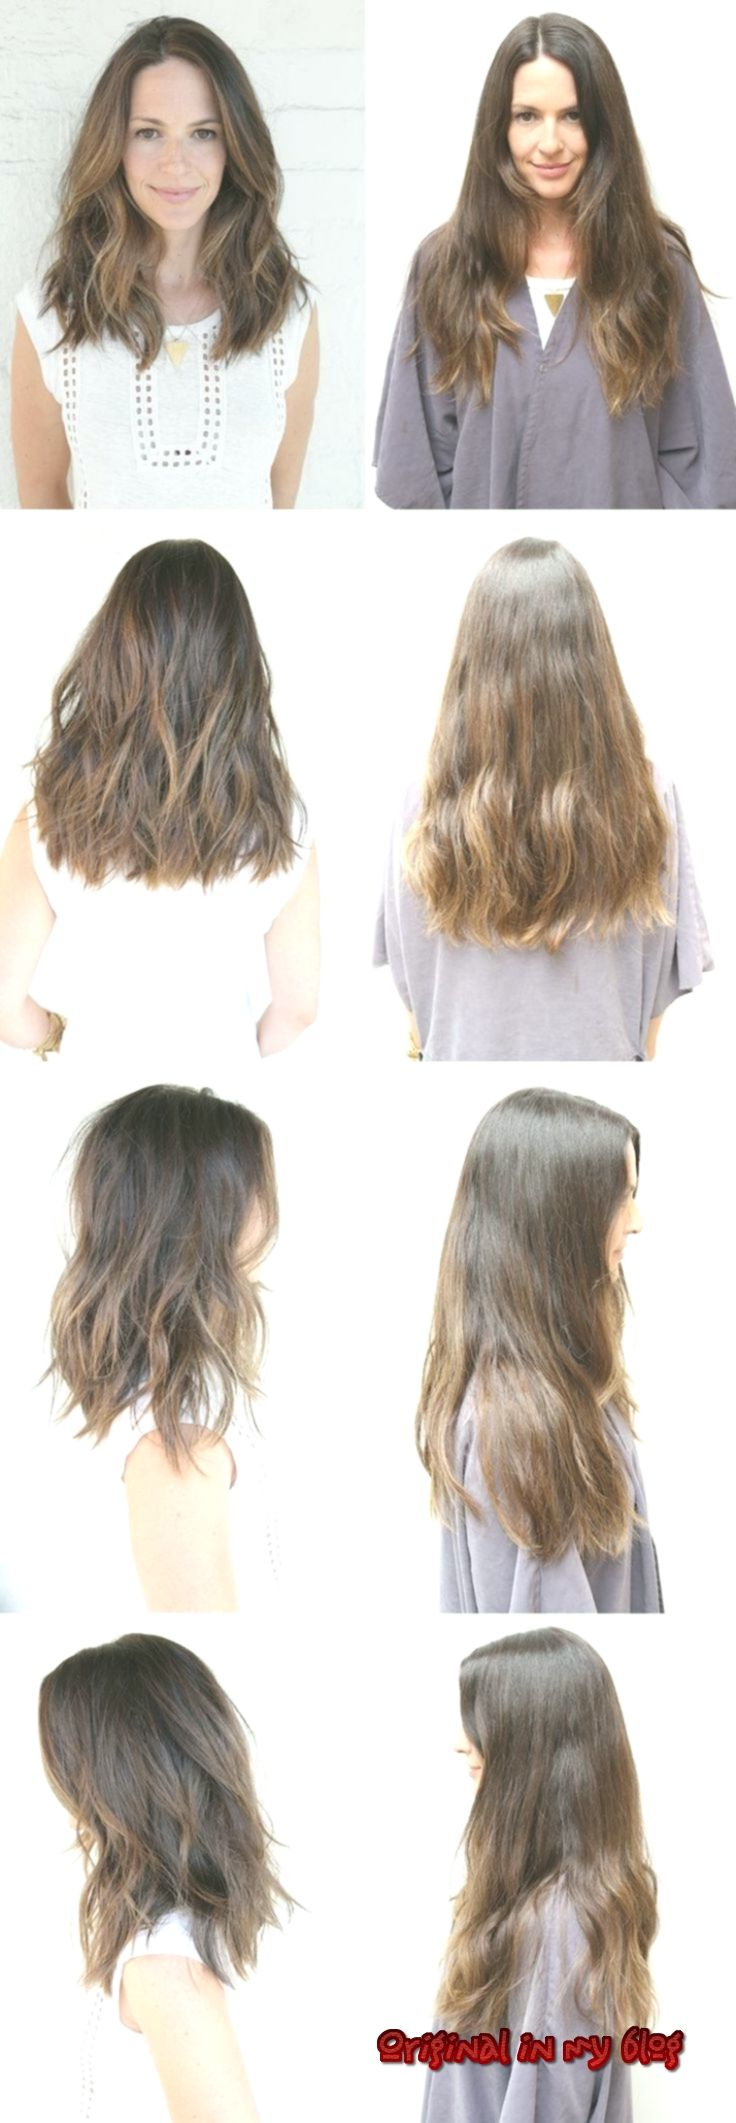 Bob hairstyles 2019 – hairstyles for long hair – 30 ideas for great step cuts #stufig # medium … #bobhairstyles